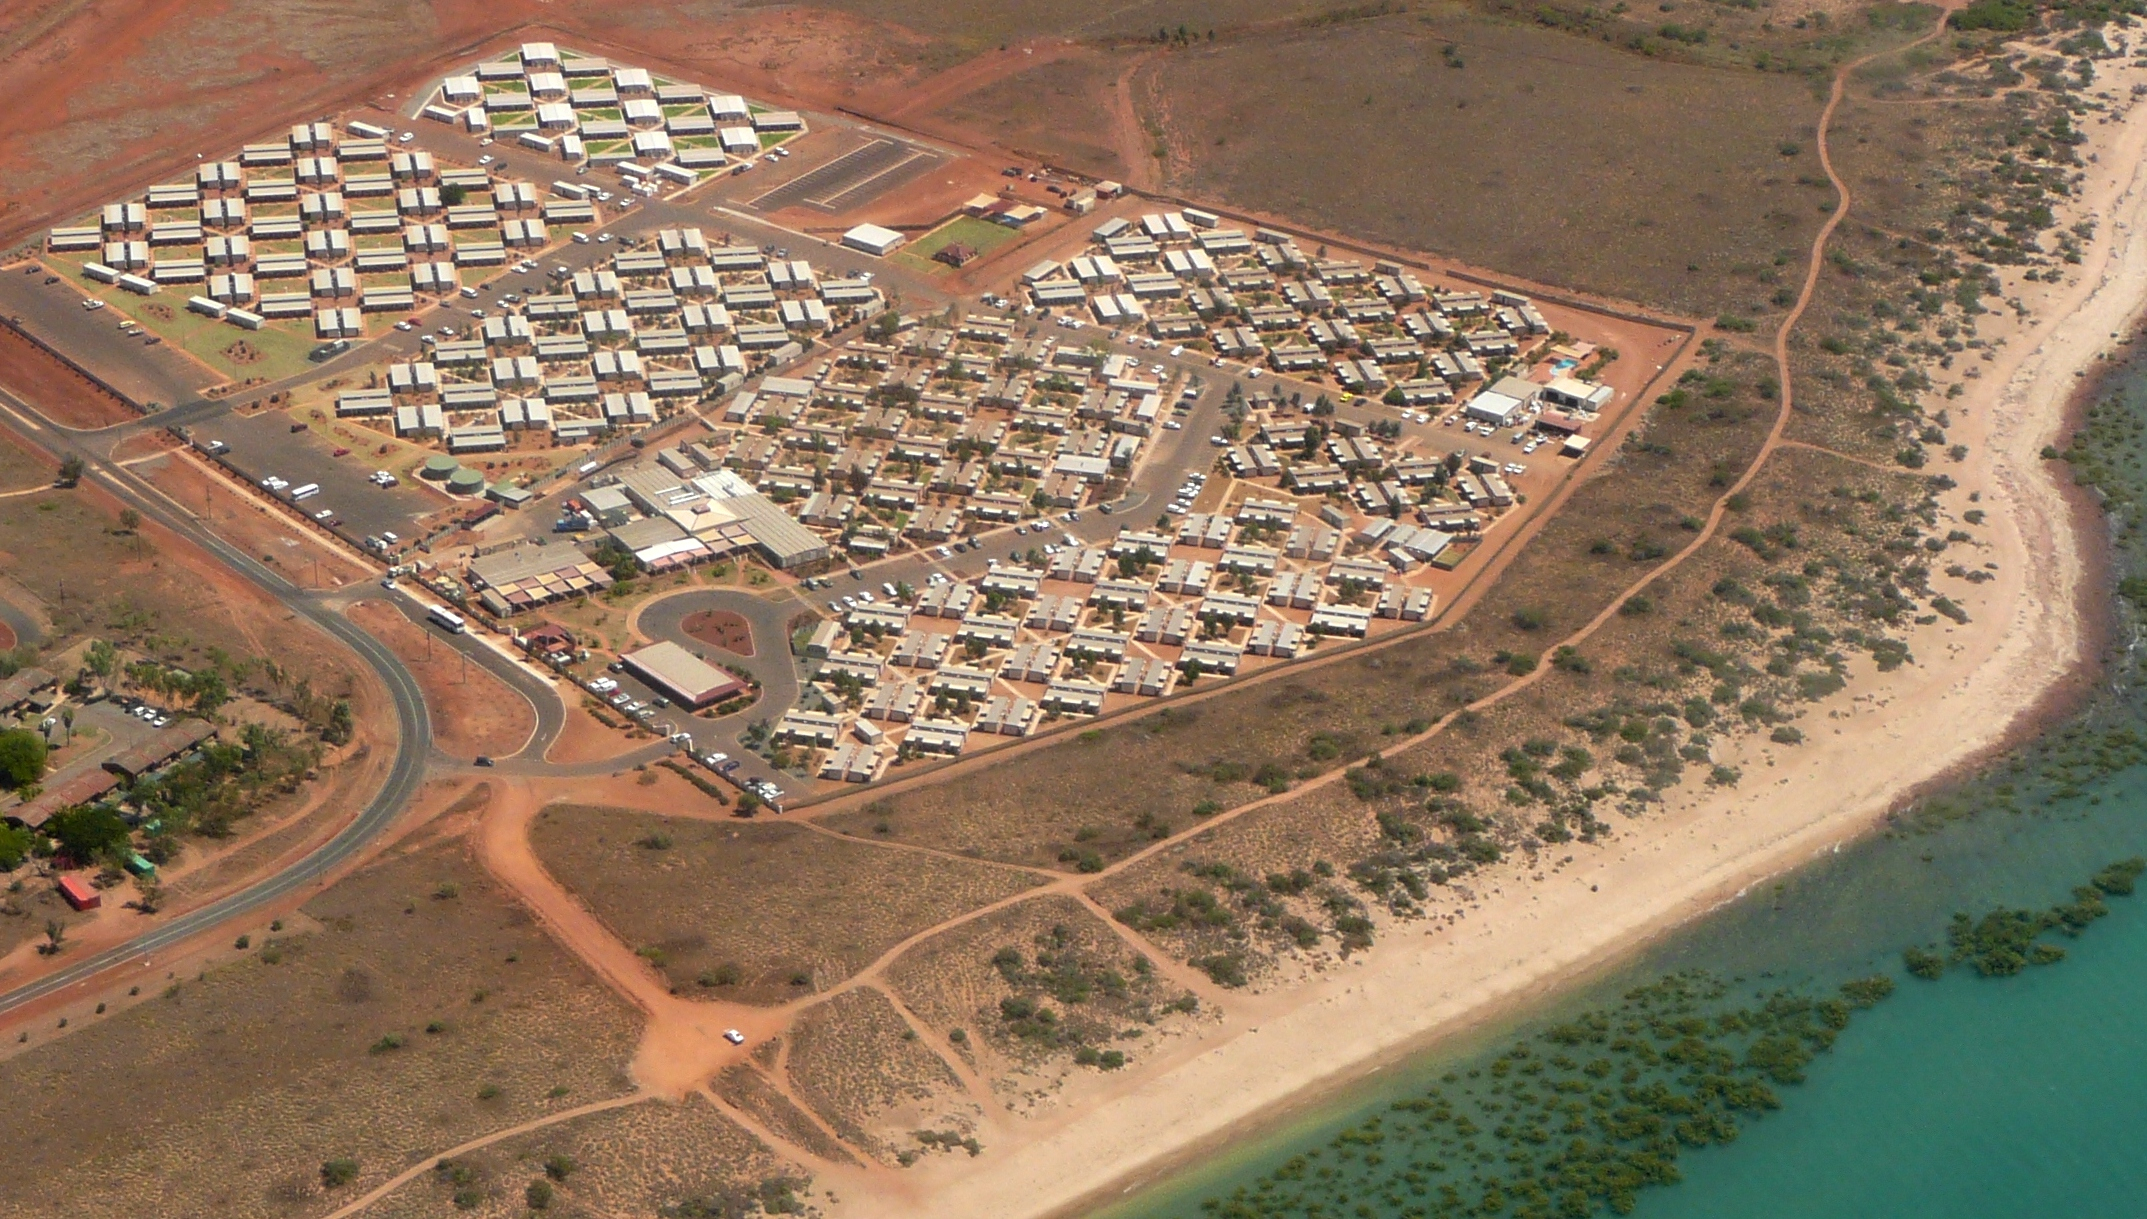 Typical Mining and Construction Worker's Camp